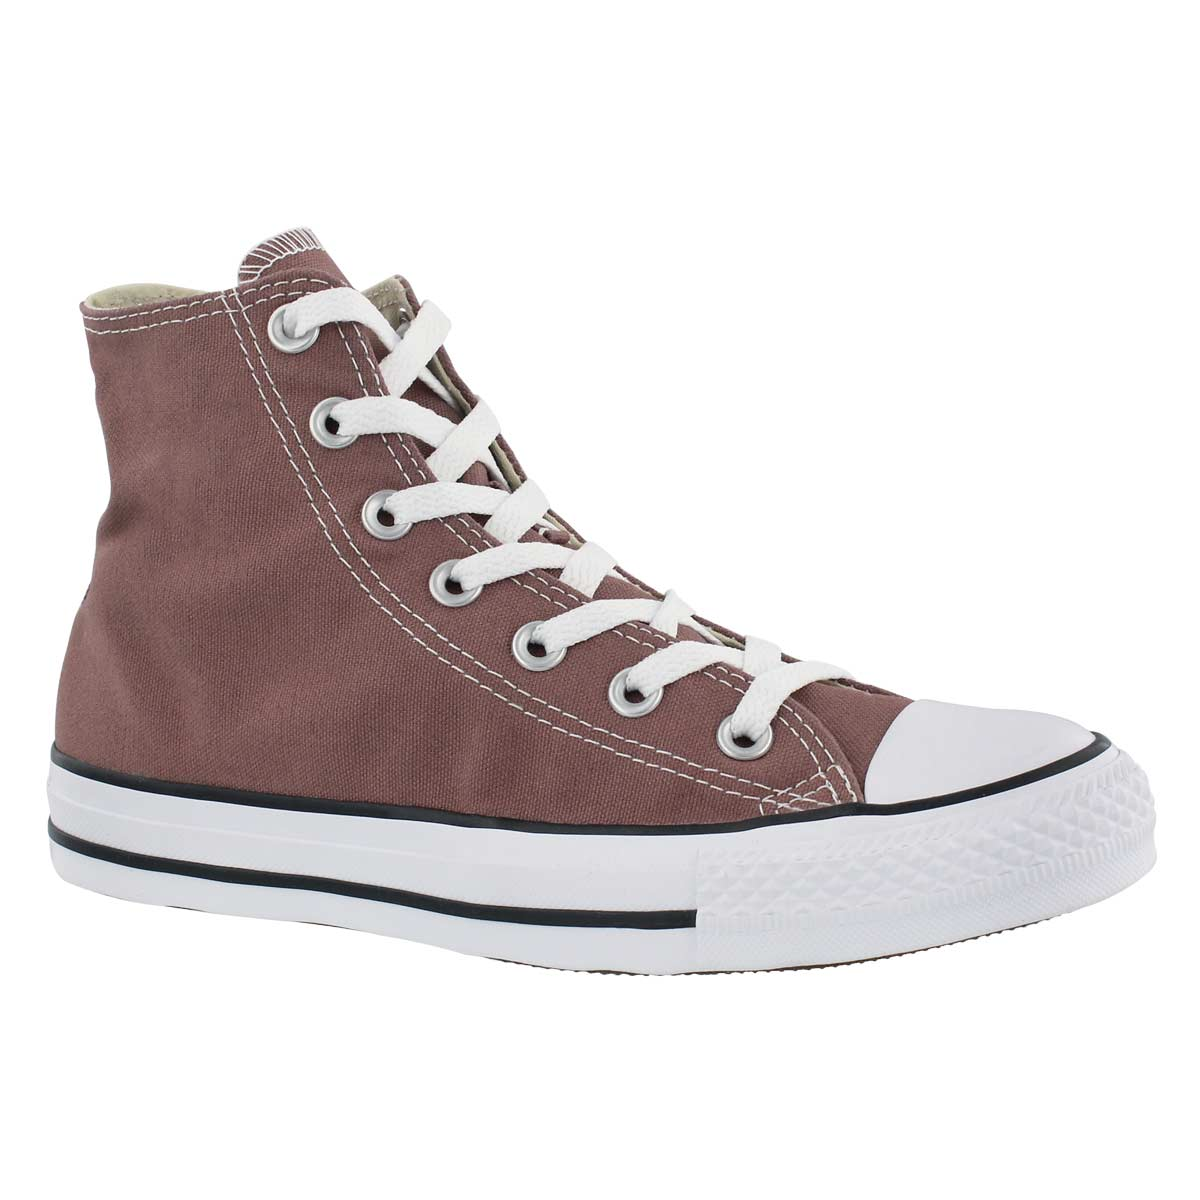 Women's CT ALL STAR SEASONAL saddle high tops